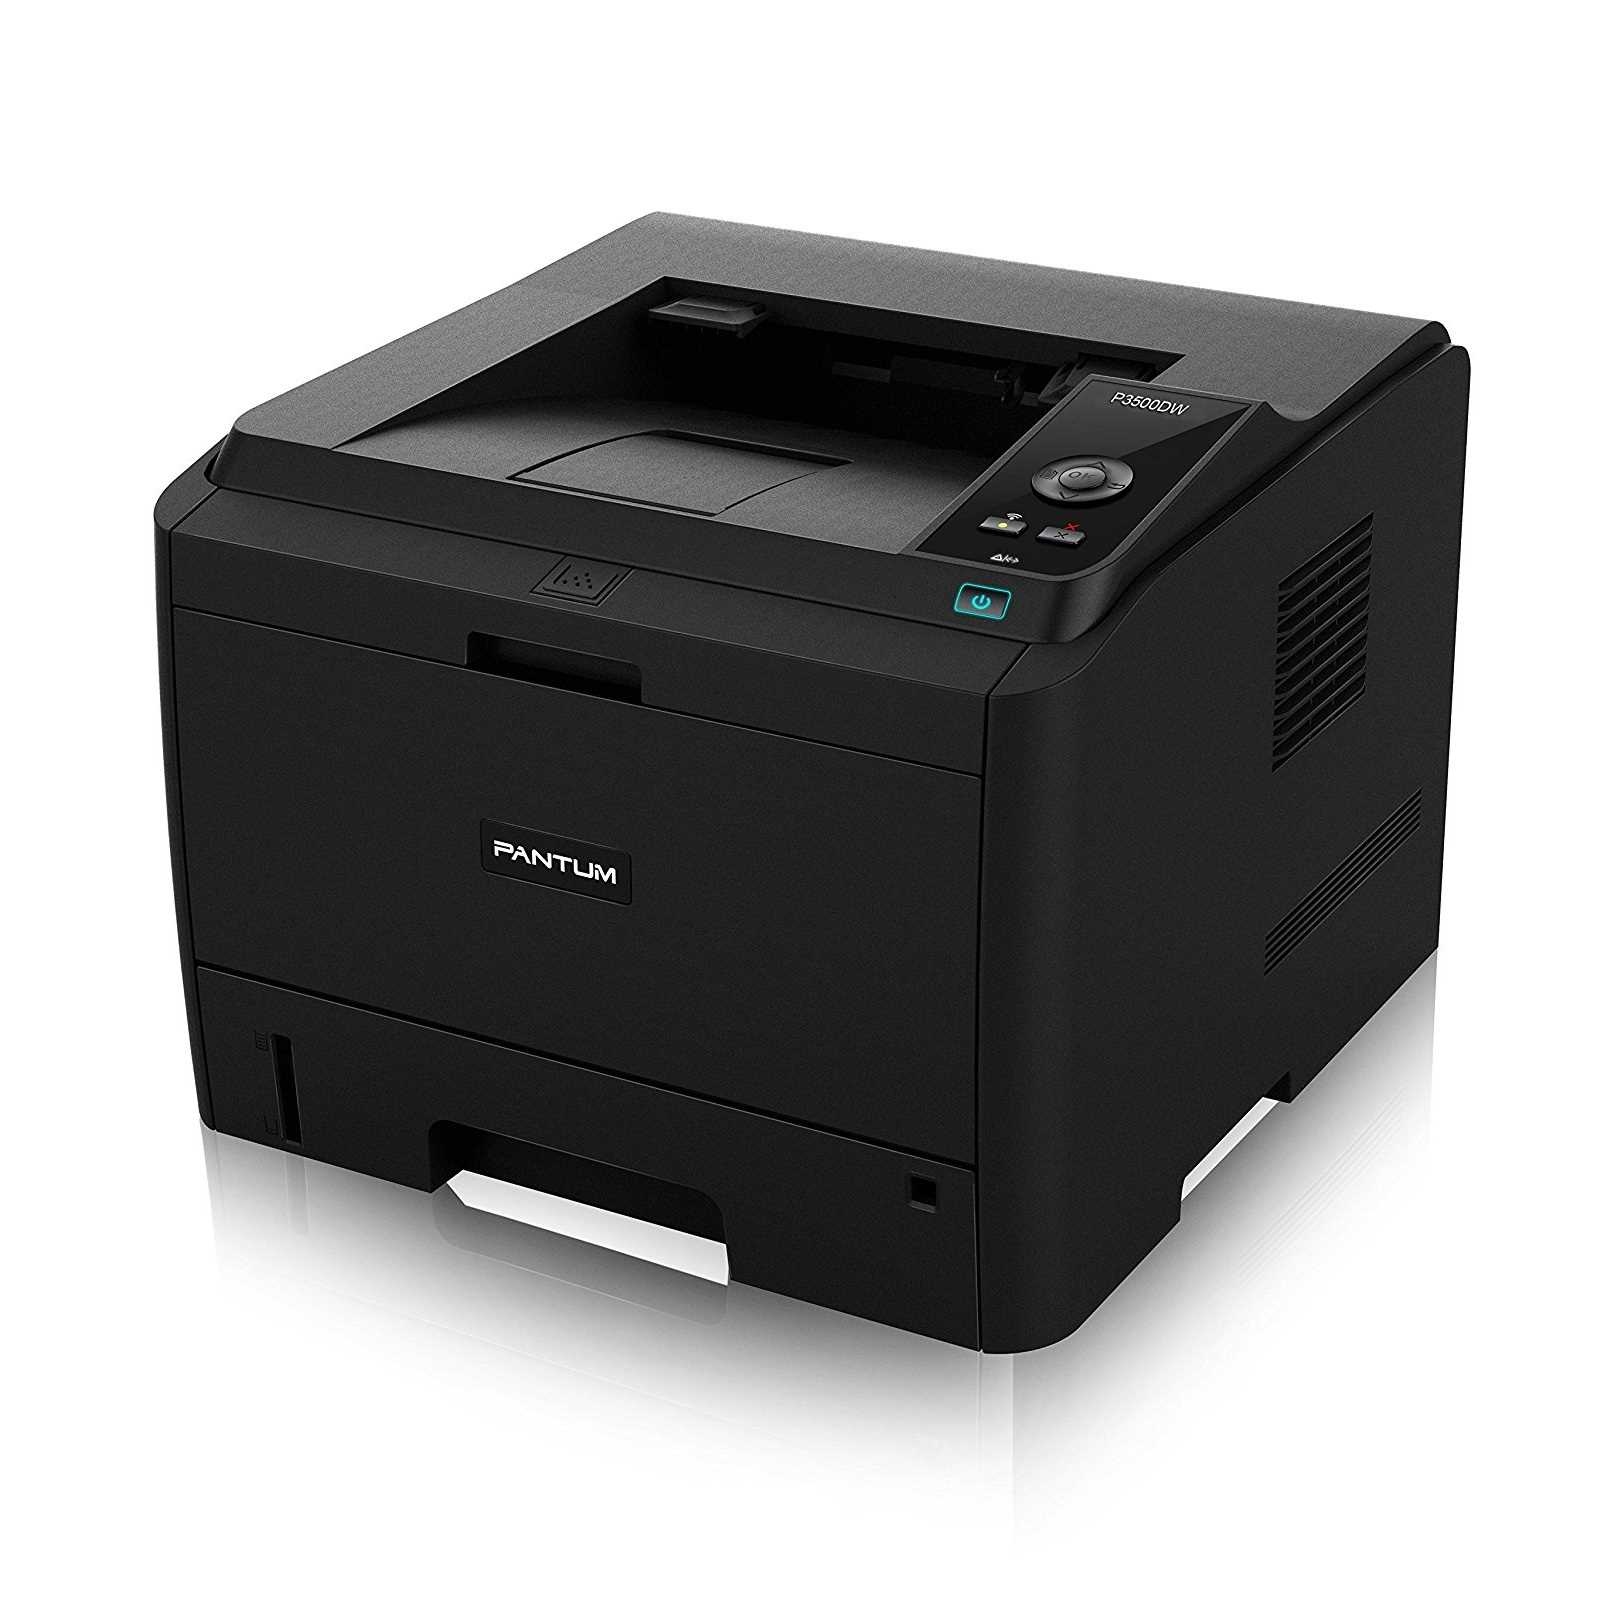 Pantum P3500DW Laser Single Function Printer